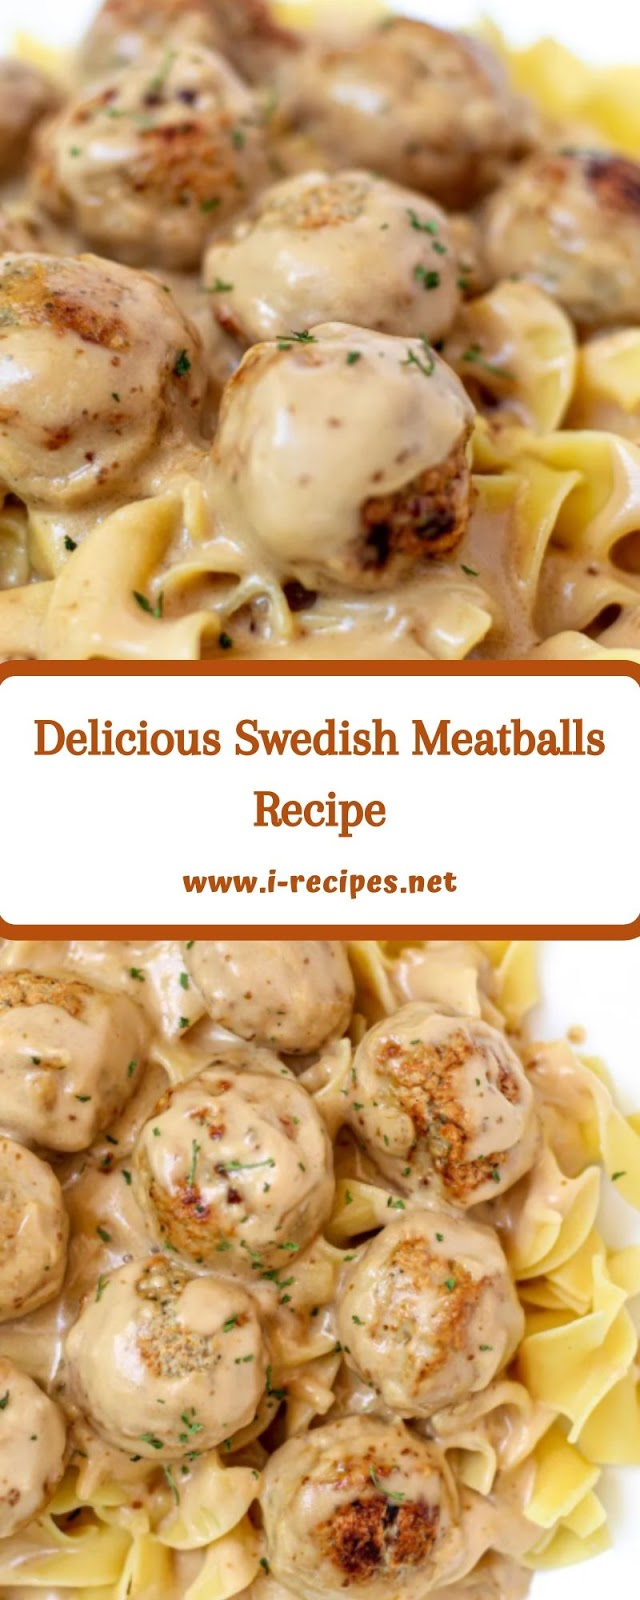 Delicious Swedish Meatballs Recipe